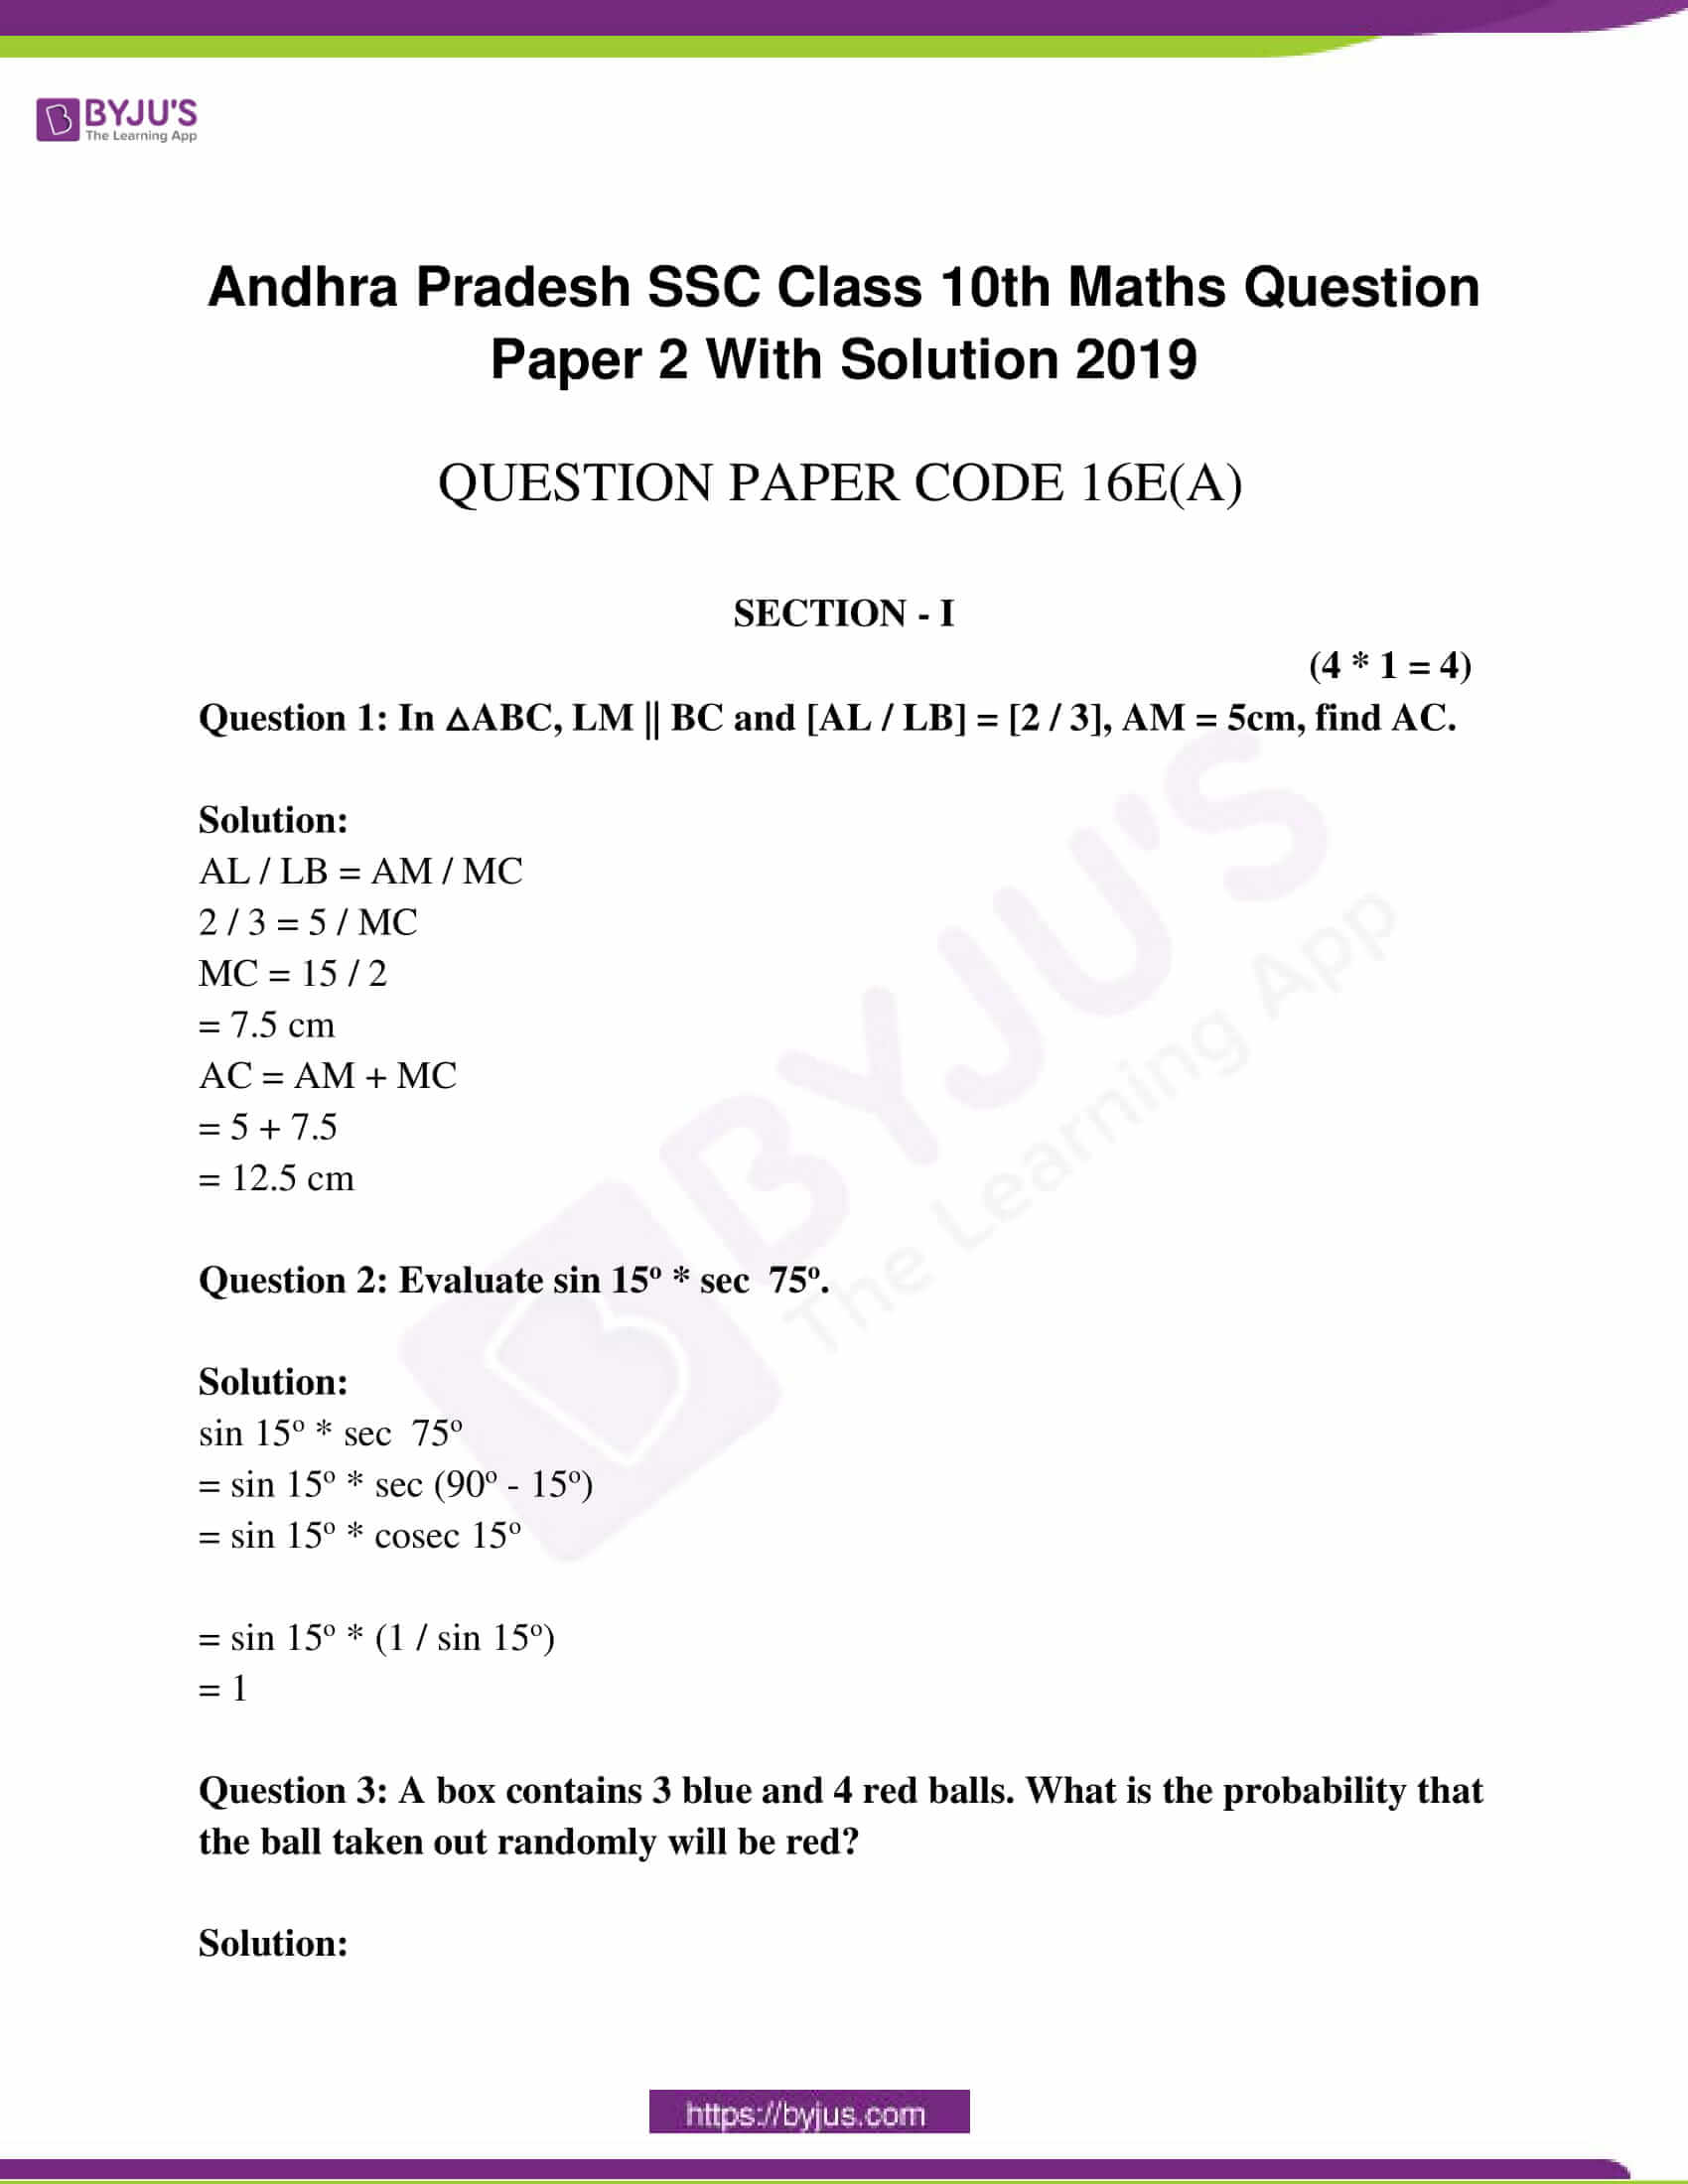 ap class 10 maths question paper 2 sol march 2019 01